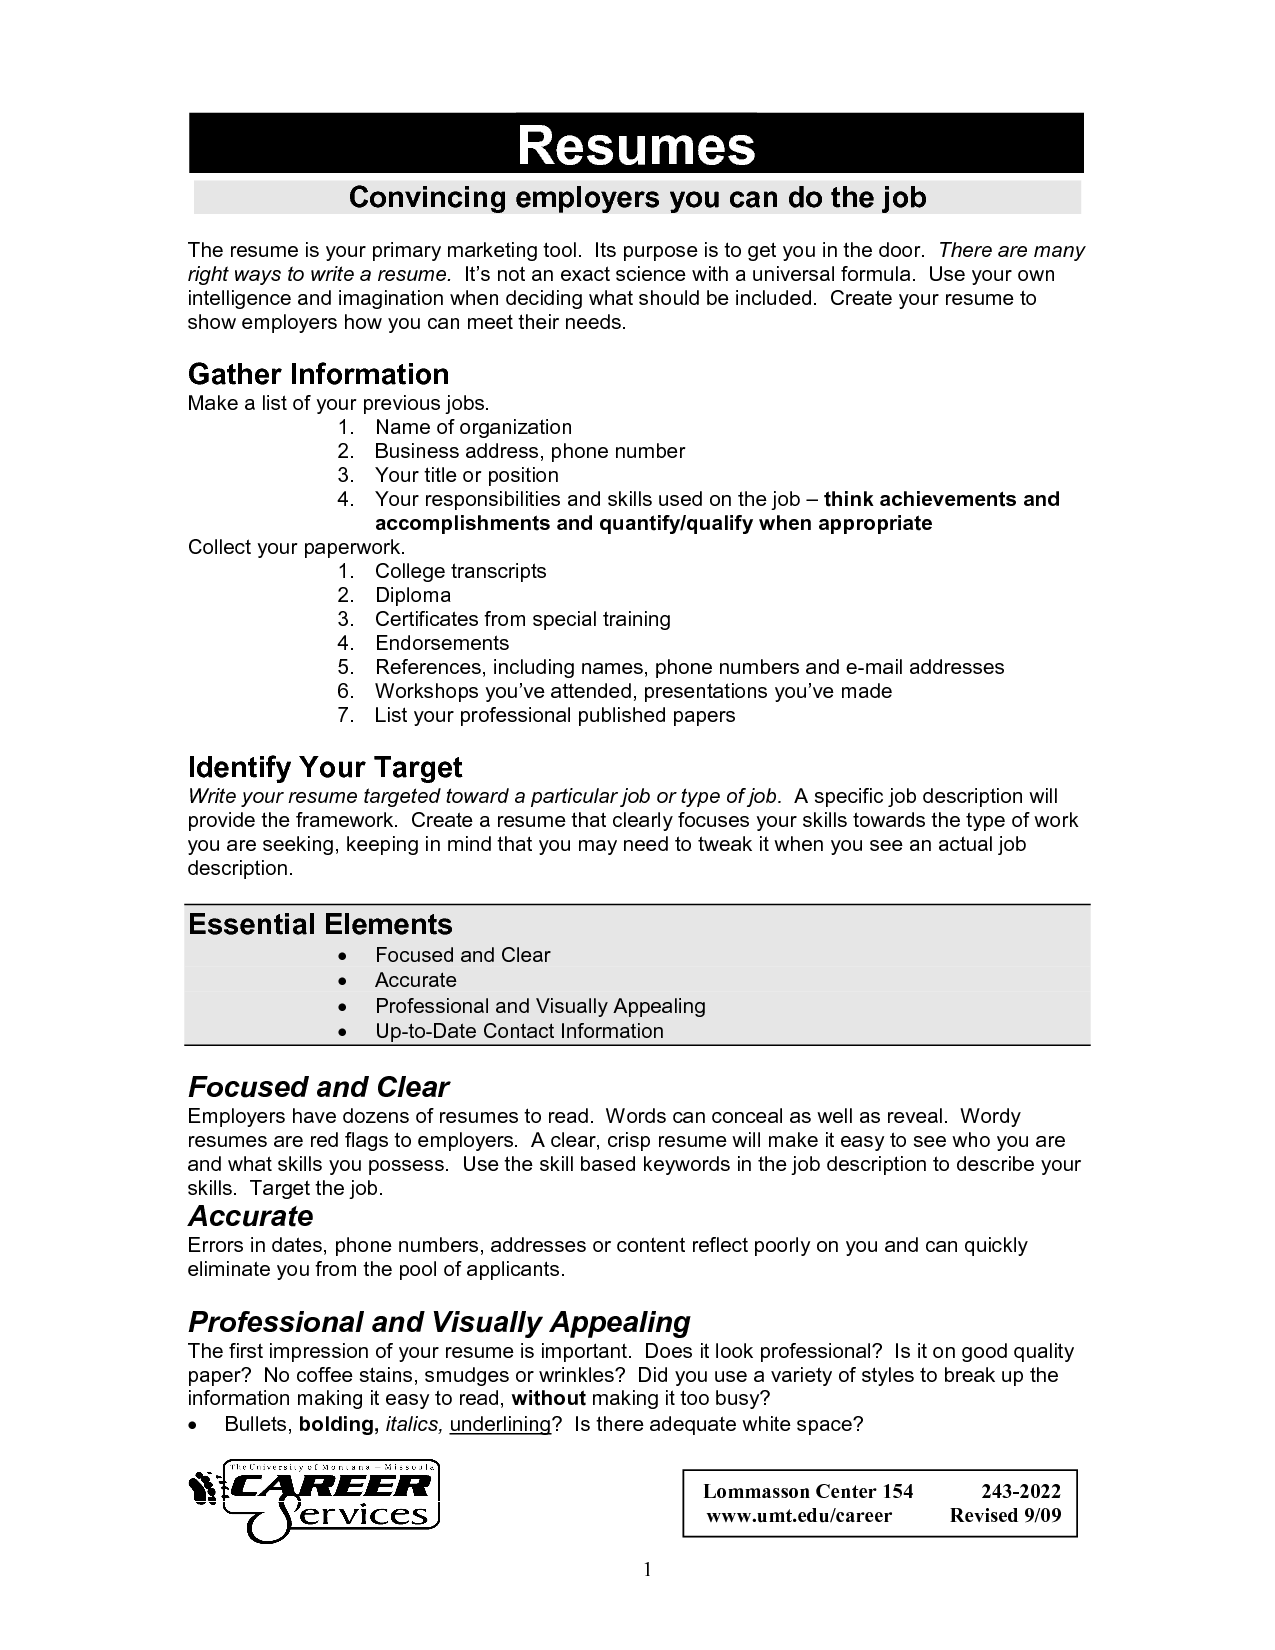 What Good Free Resume Builder Templates And Best Writing Software  How To Write A Resume For Free